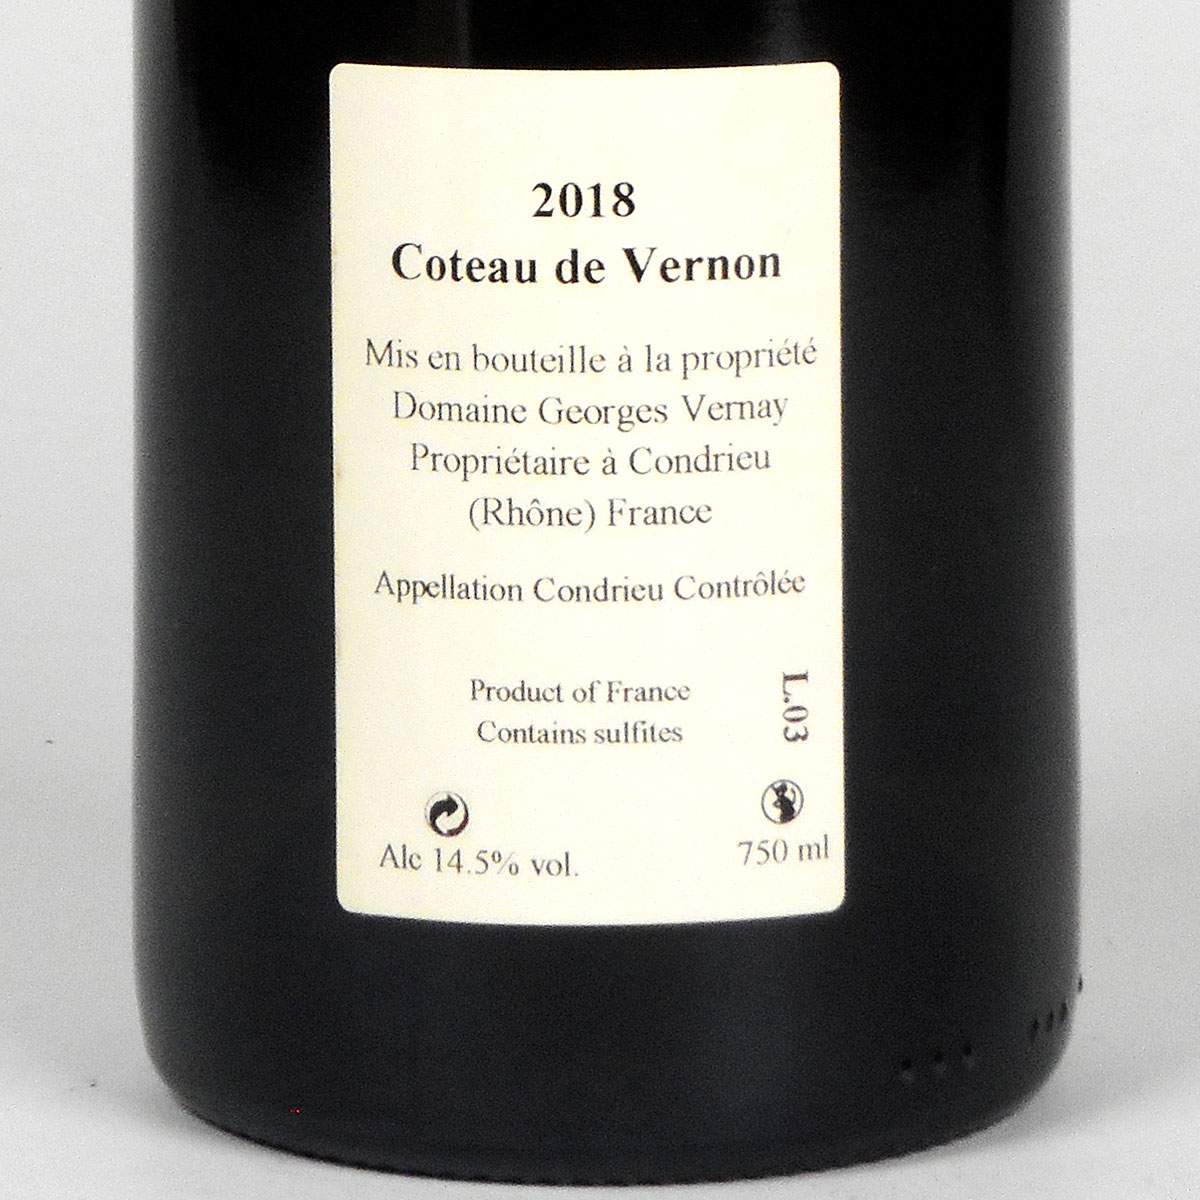 Condrieu: Domaine Georges Vernay 'Coteau de Vernon' 2018 - Bottle Rear Label